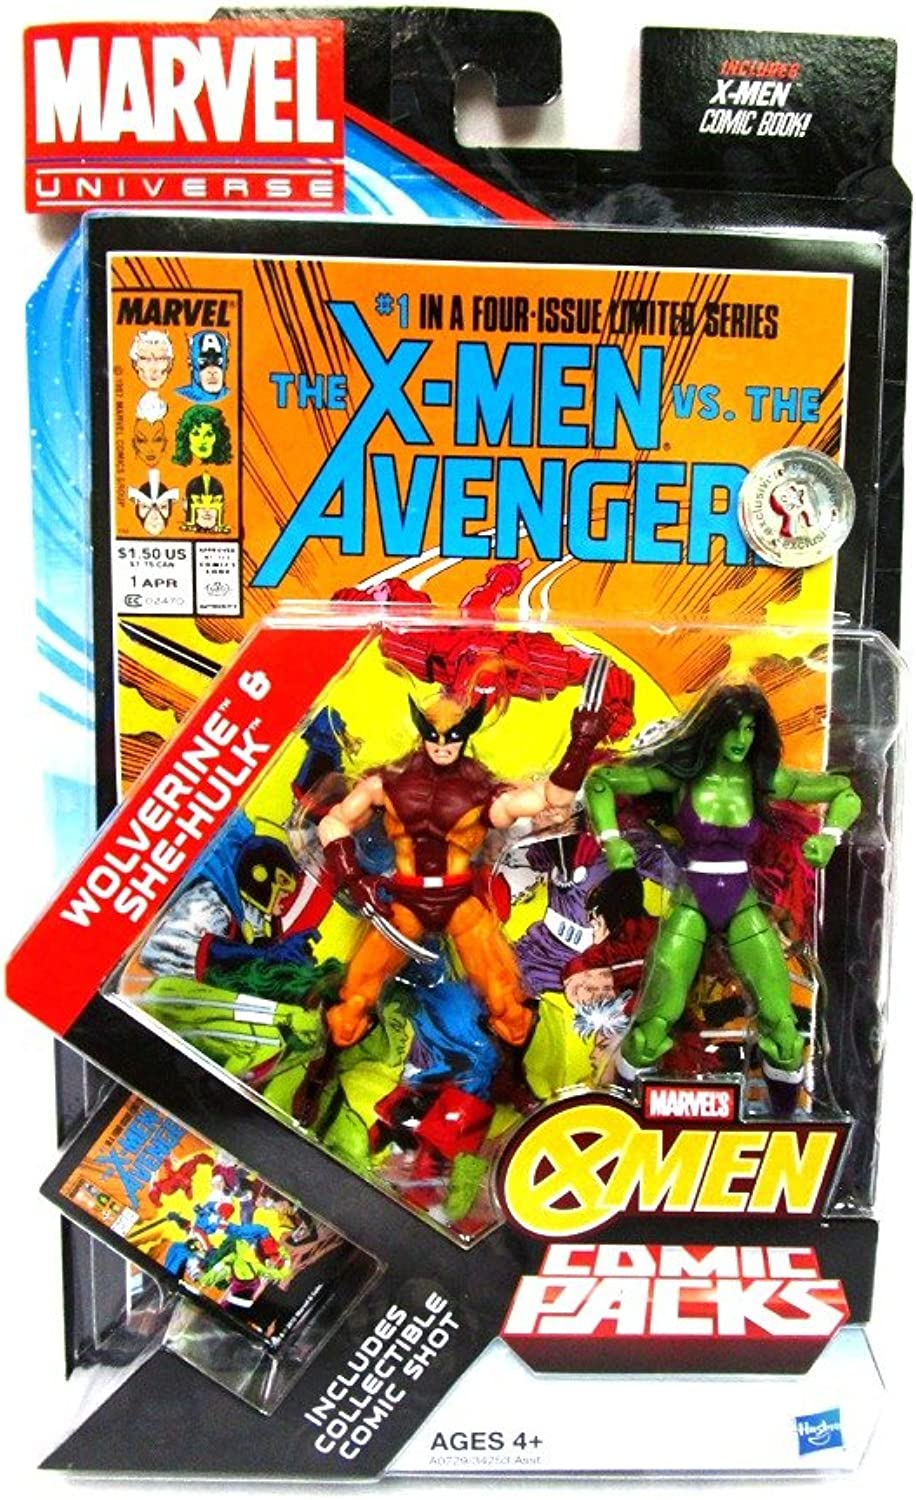 Marvel Universe Wolverine & SheHulk Exclusive Comic Pack Includes Collectible Comic Shot & Comic Book by Marvel